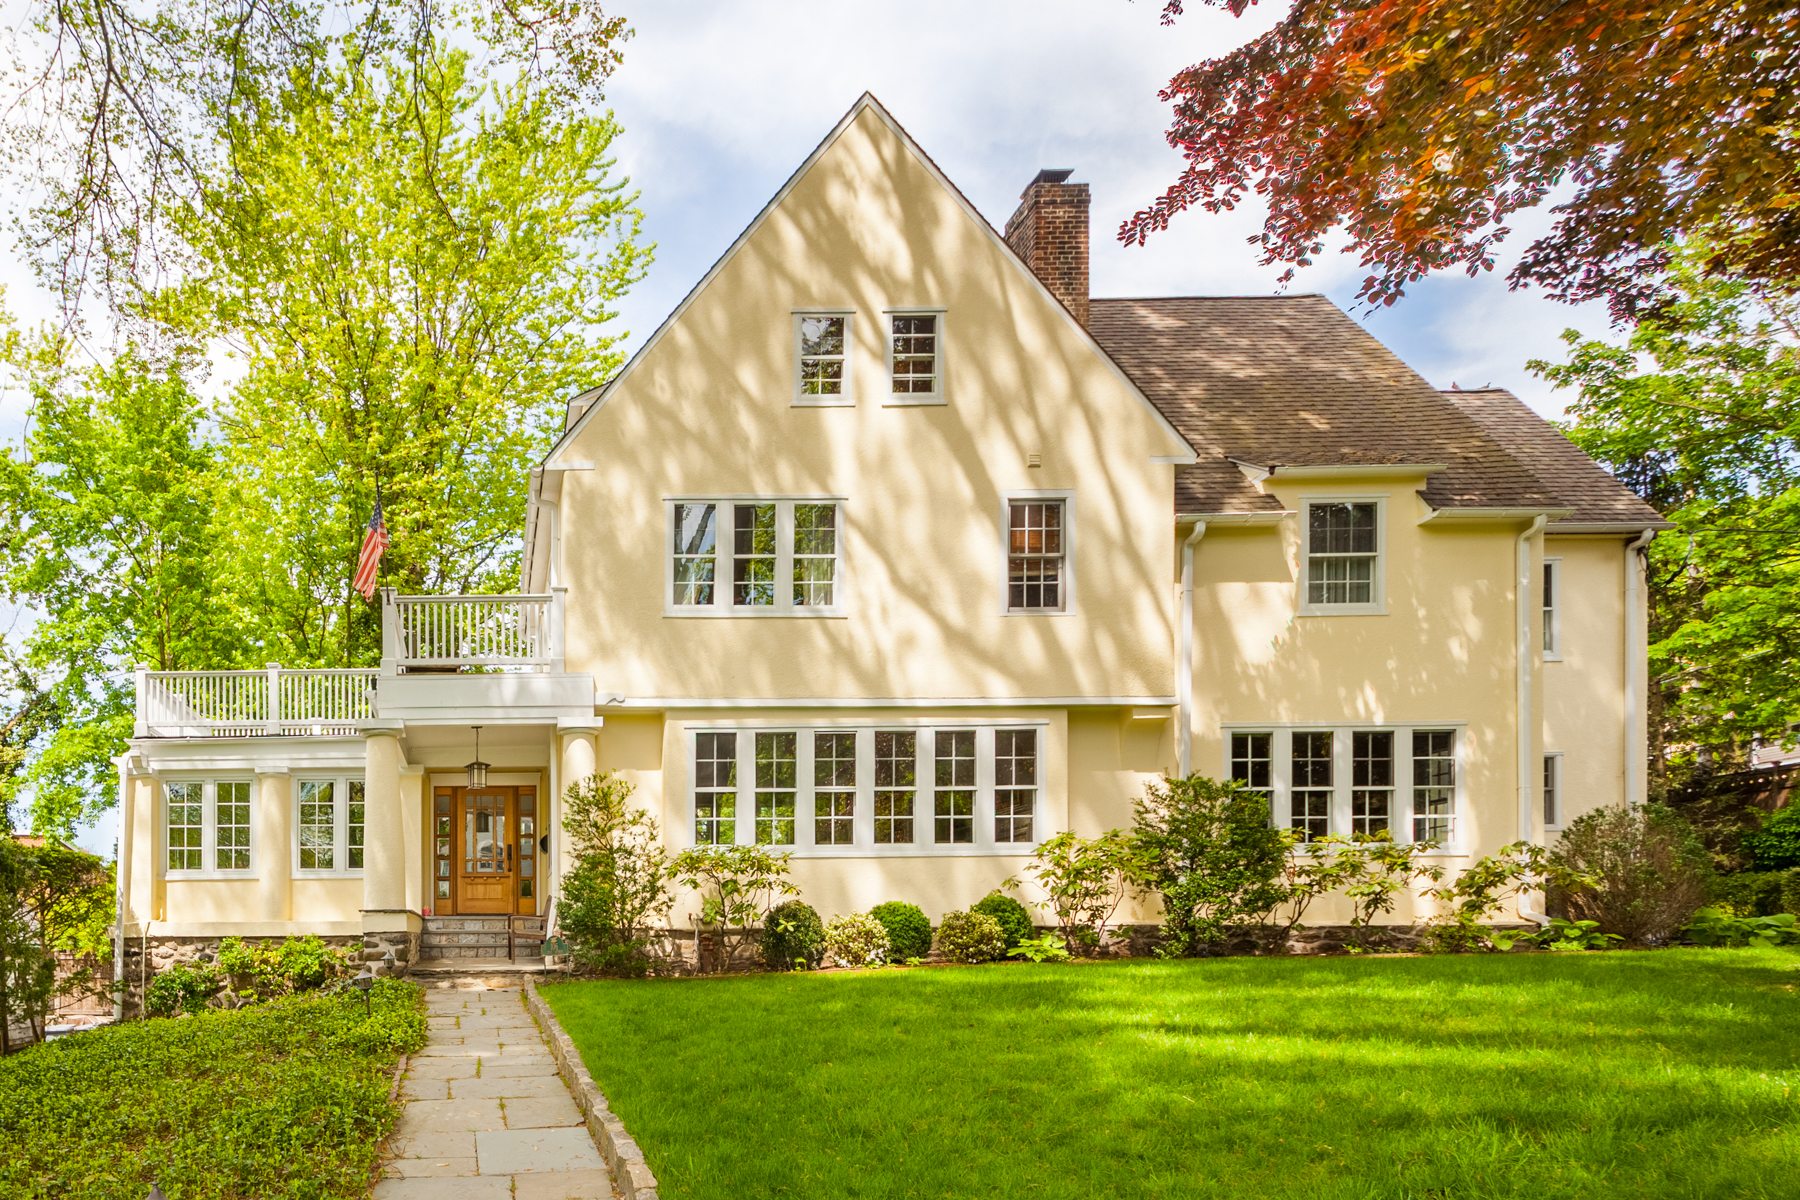 Single Family Homes for Sale at Welcome To 106 Park Avenue 106 Park Avenue Bronxville, New York 10708 United States